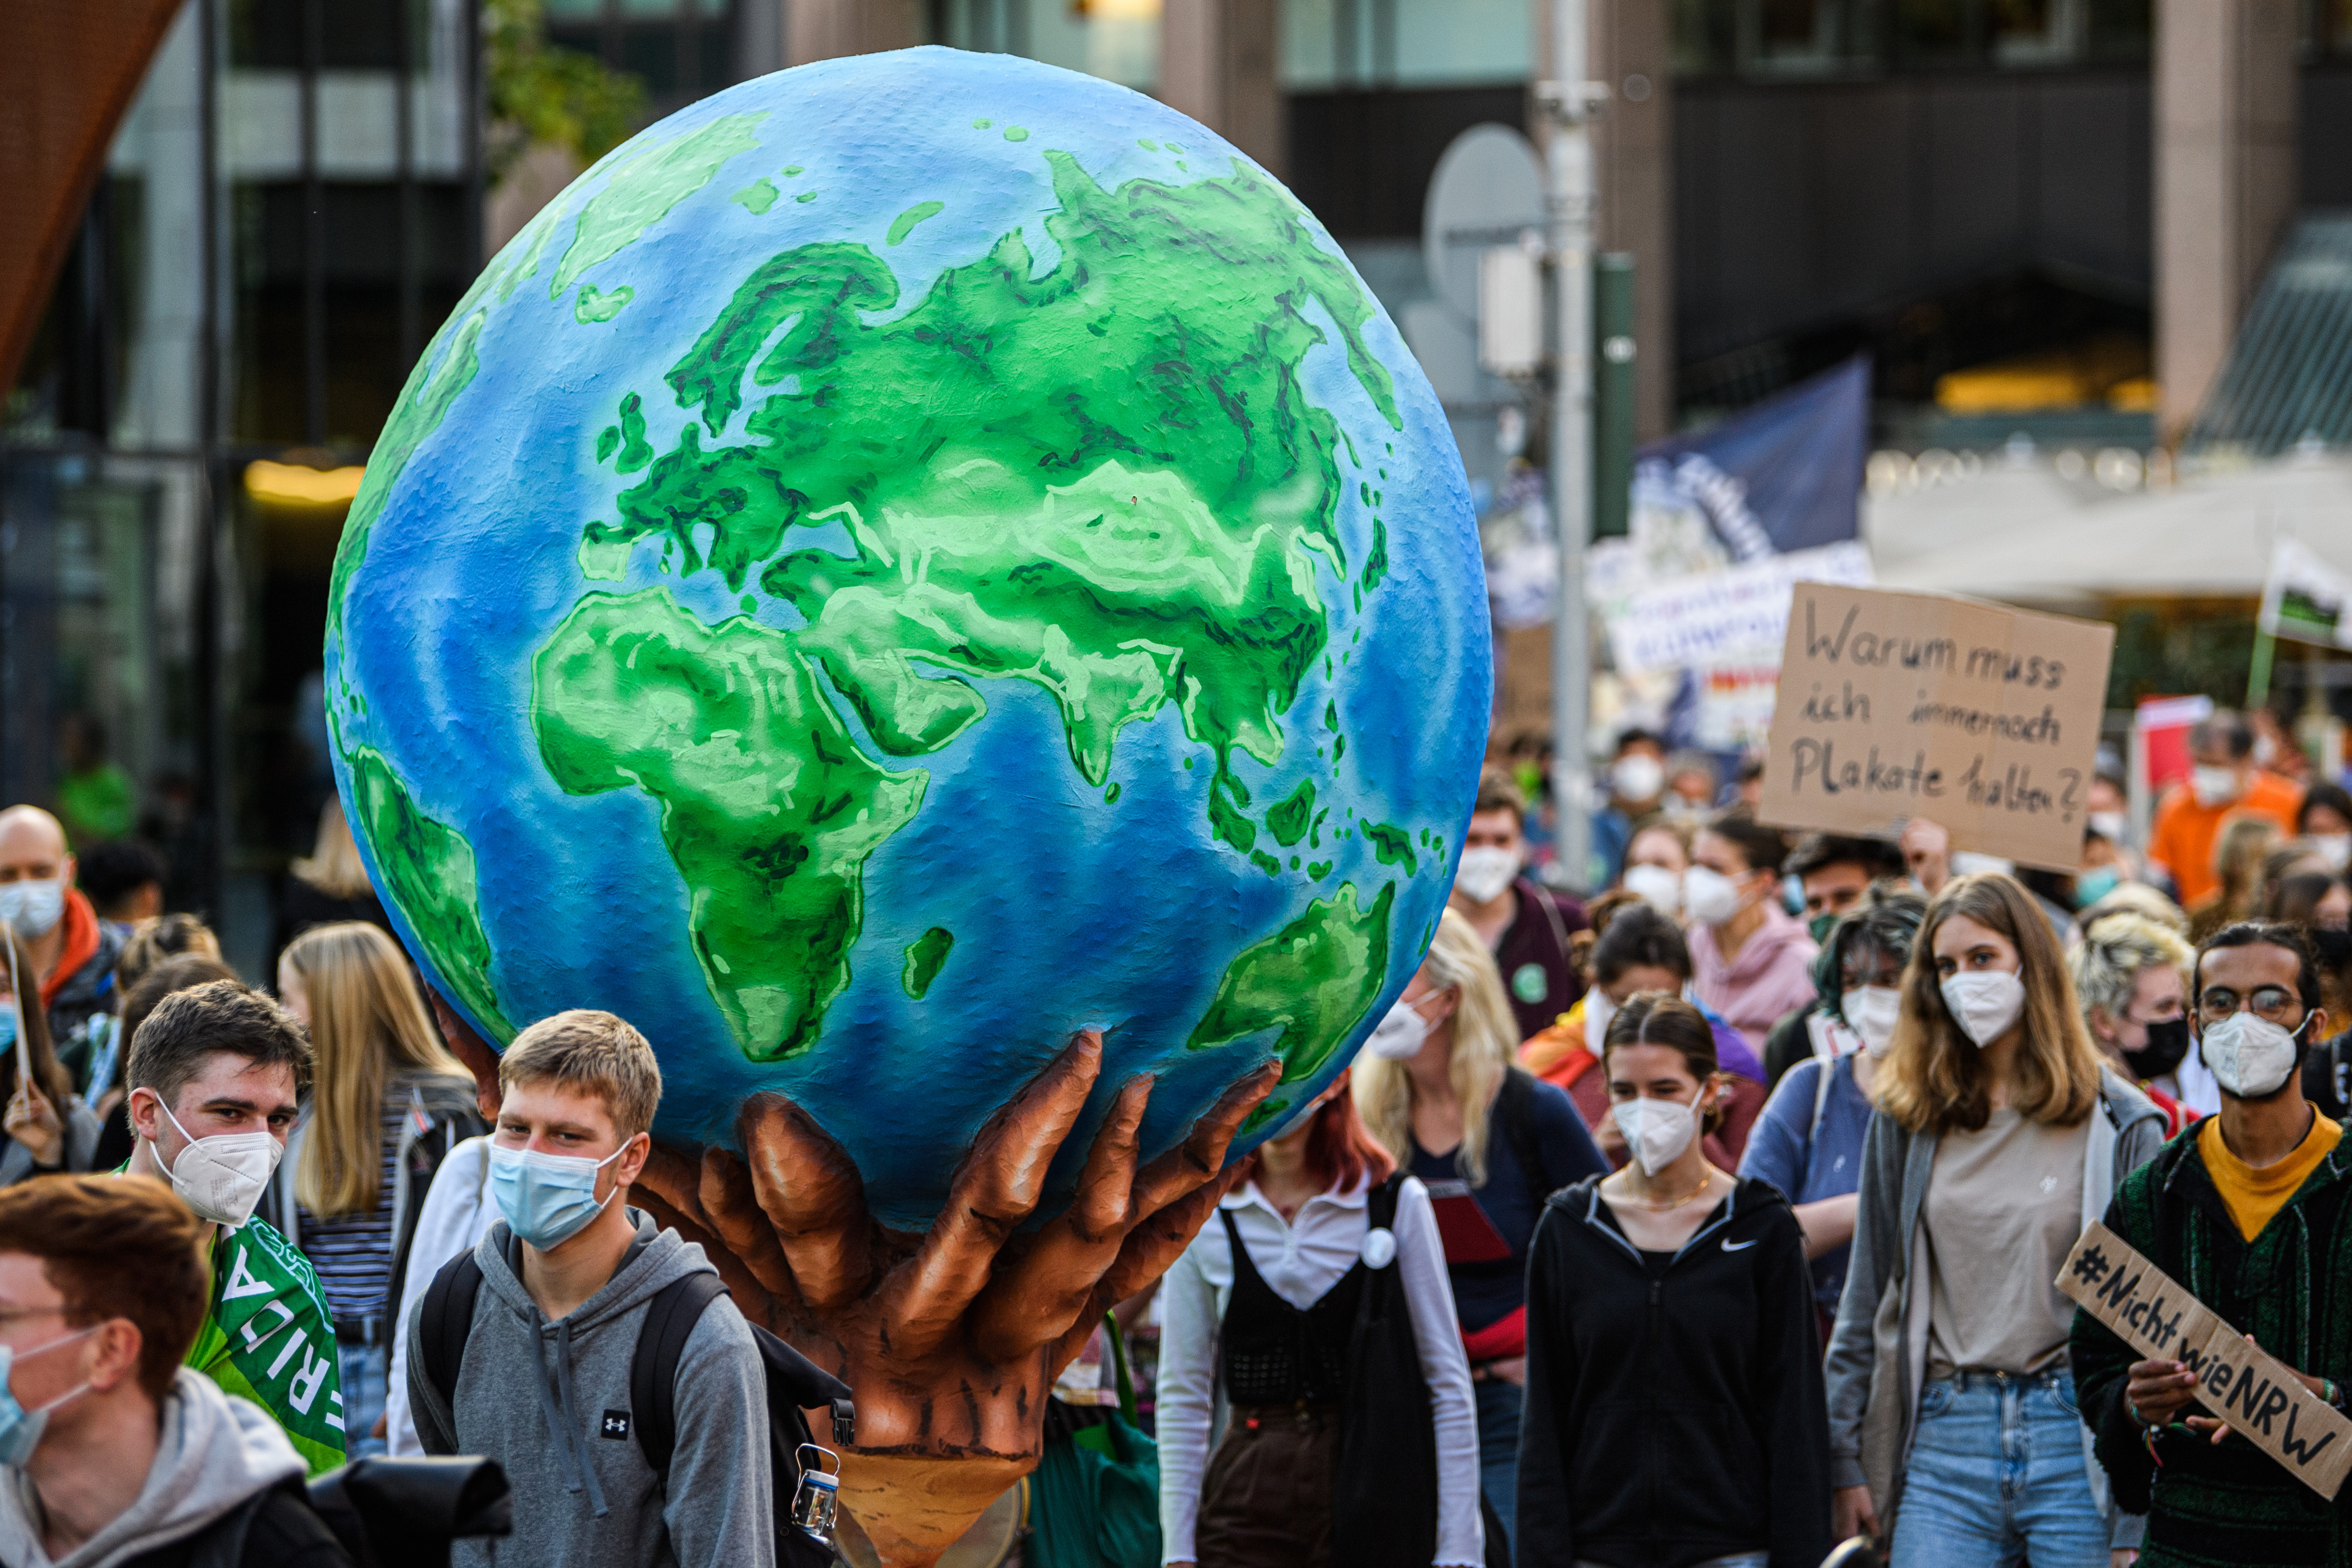 Protesters carry down an urban street a huge model of the earth with flames at its base.